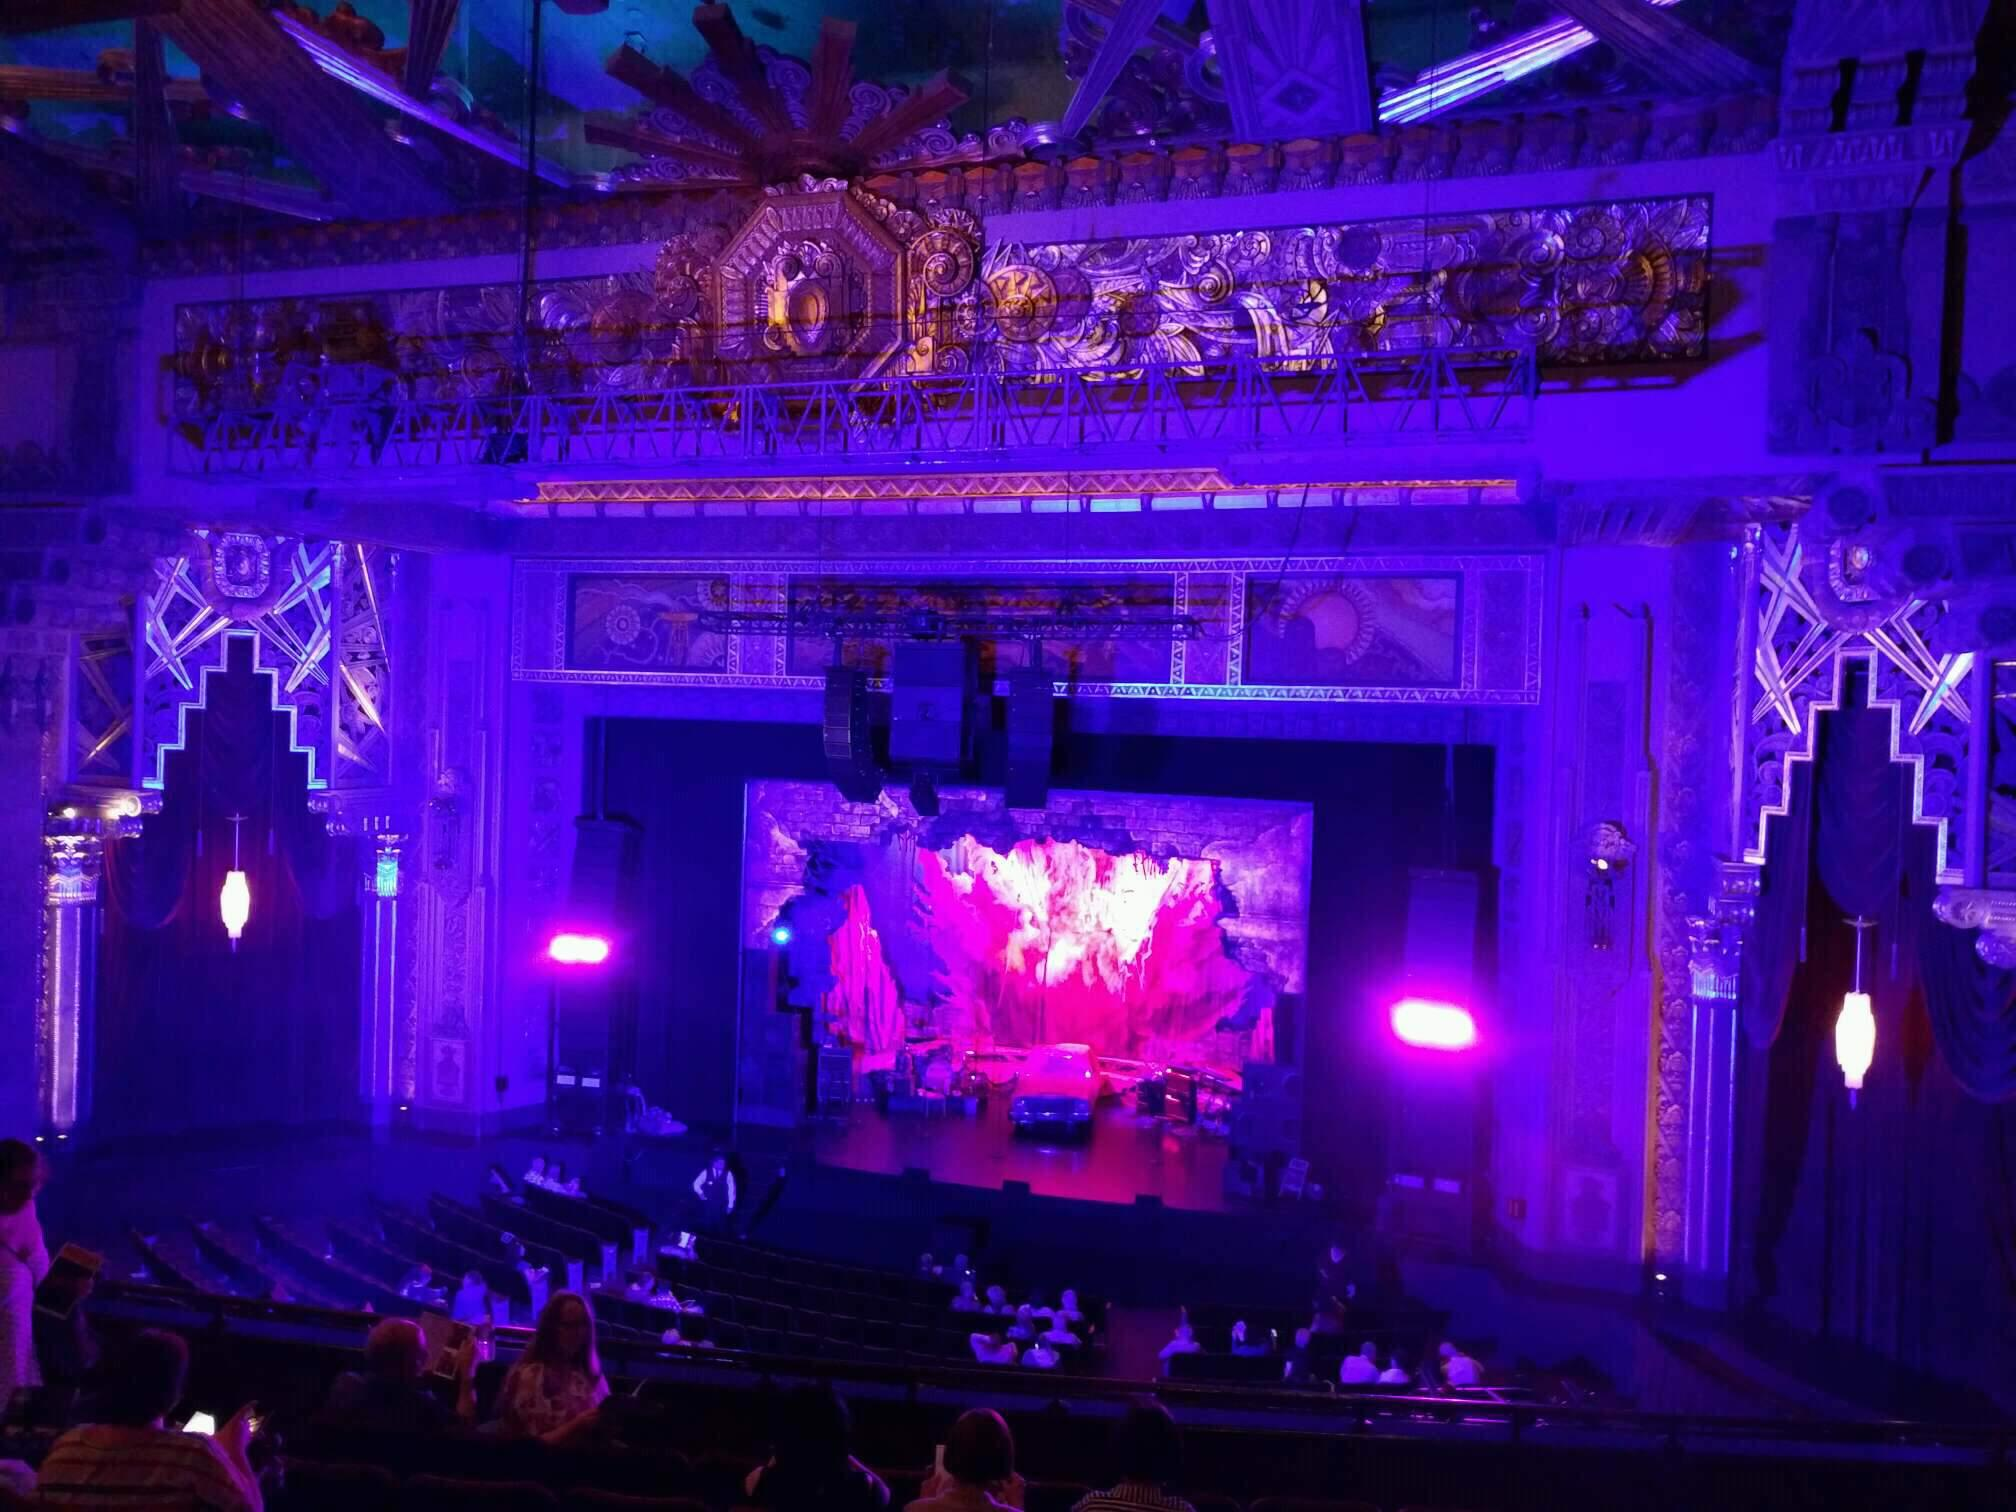 Hollywood Pantages Theatre Section Mezzanine RC Row h Seat 209